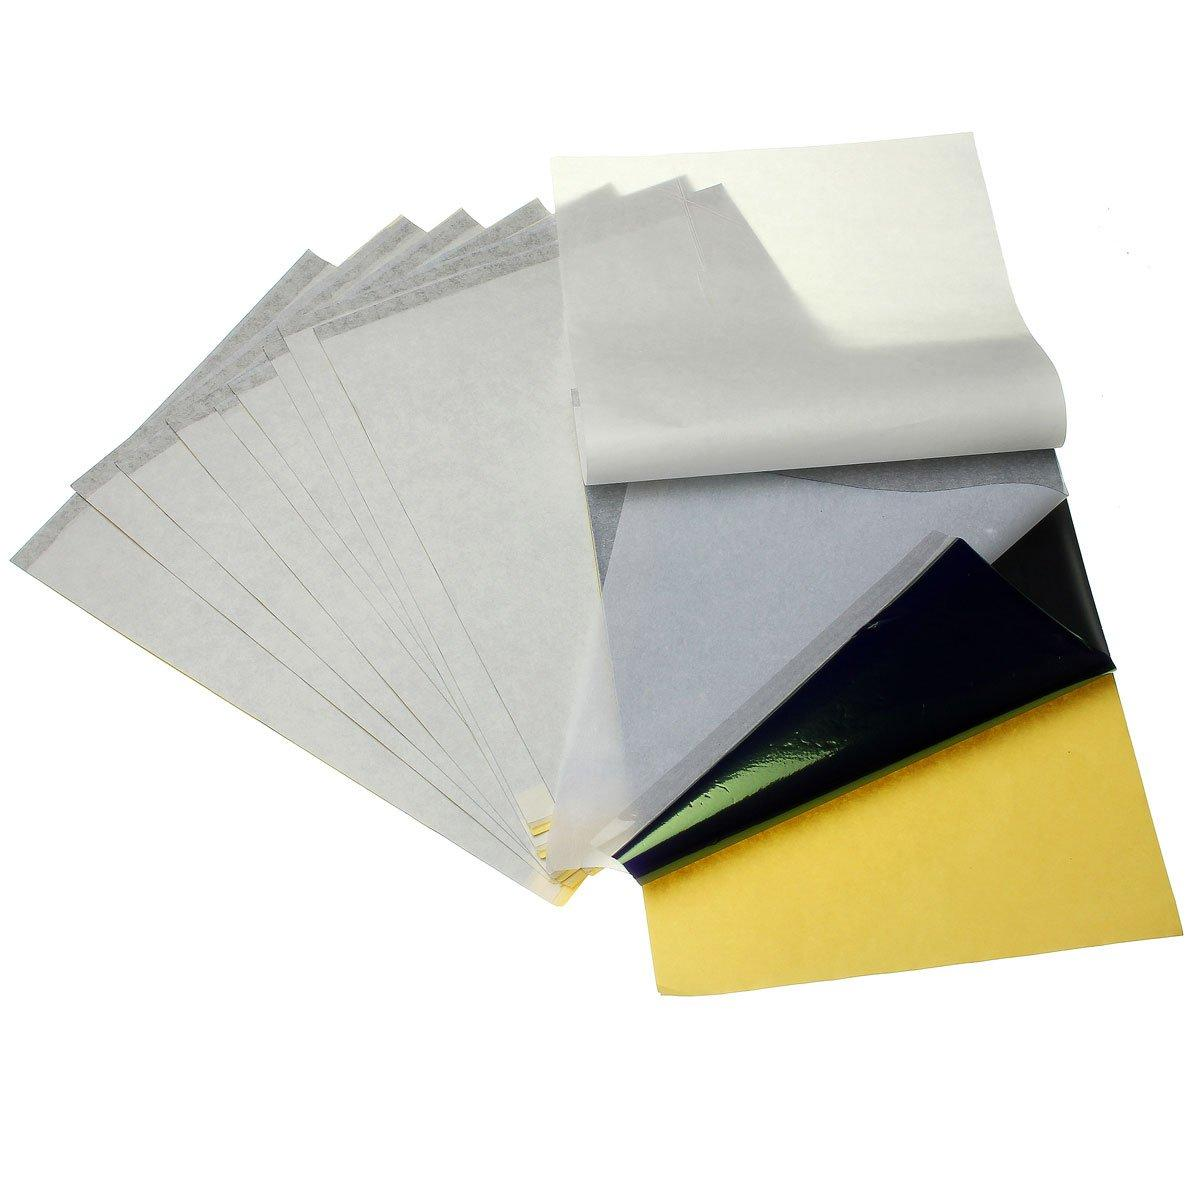 Wholesale Hthl 20x Transfer Paper Format A4 For Tattoo Cheap Tattoo Kits  With Eikon Tattoo Machines From Ladylove, $32.28| Dhgate.Com